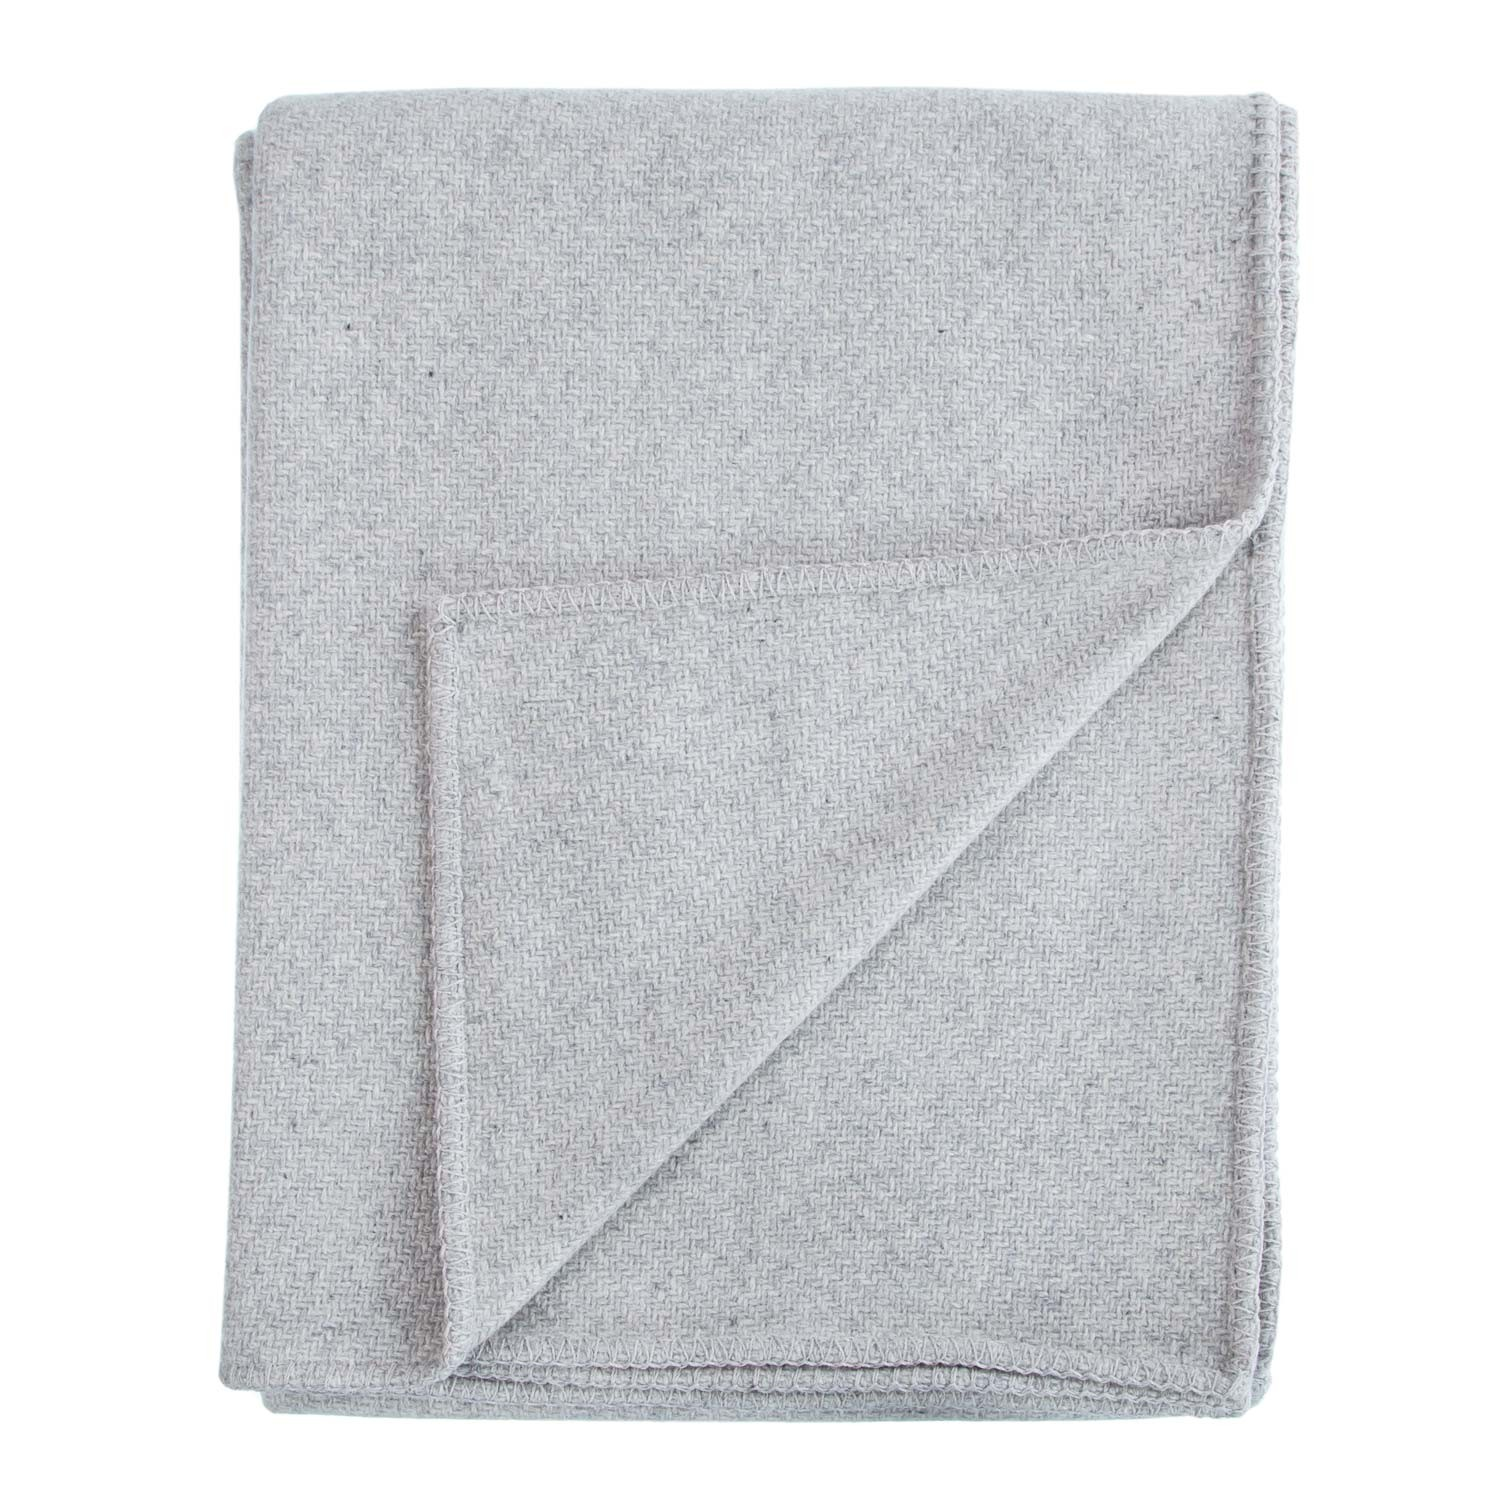 silver grey twill weave cashmere blanket. photo not available. ienprfv